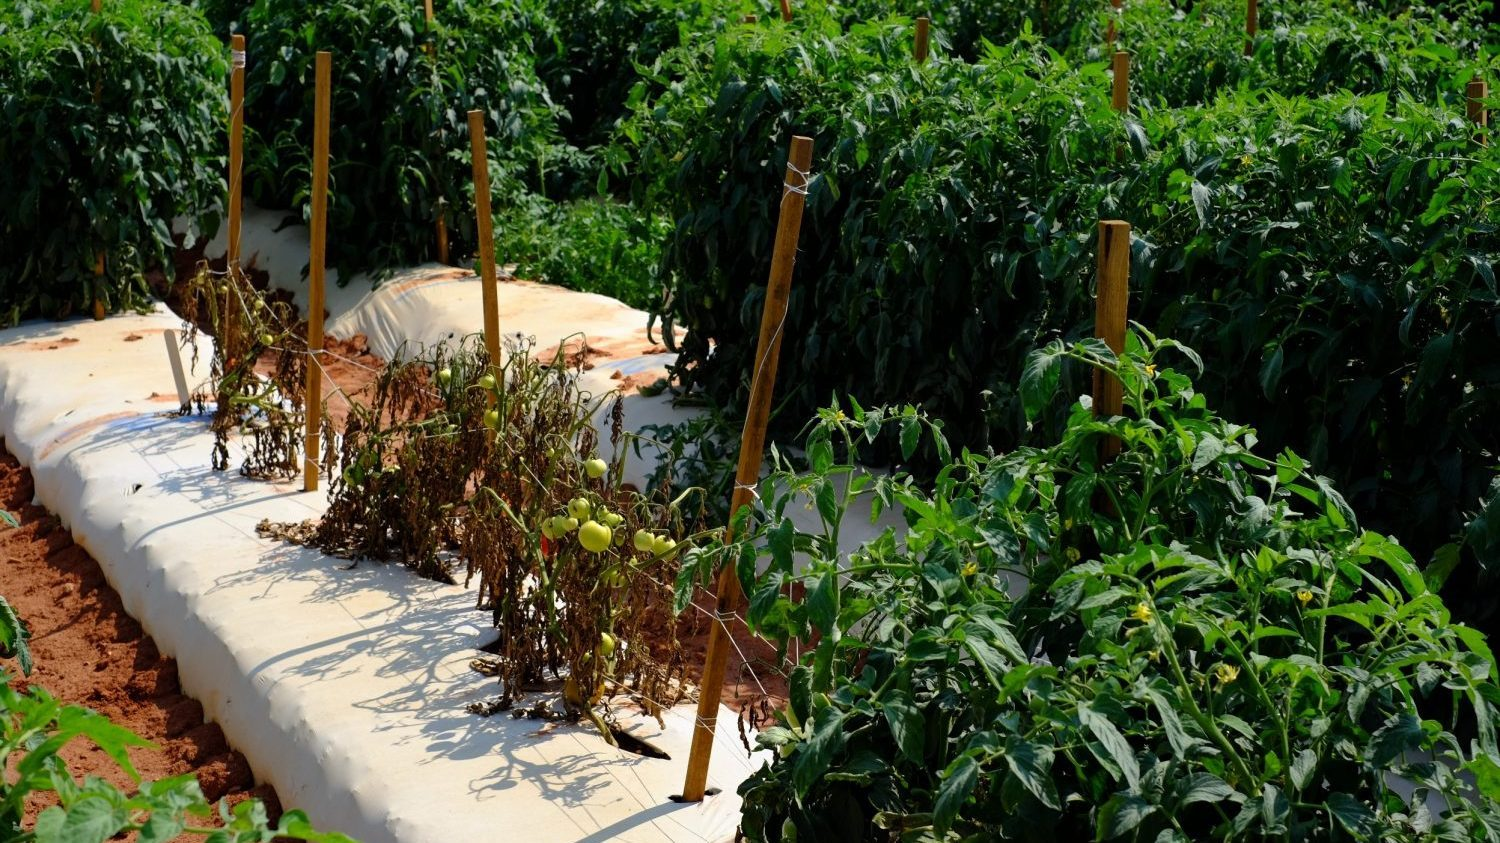 Healthy and unhealthy tomato plants in a research plot.